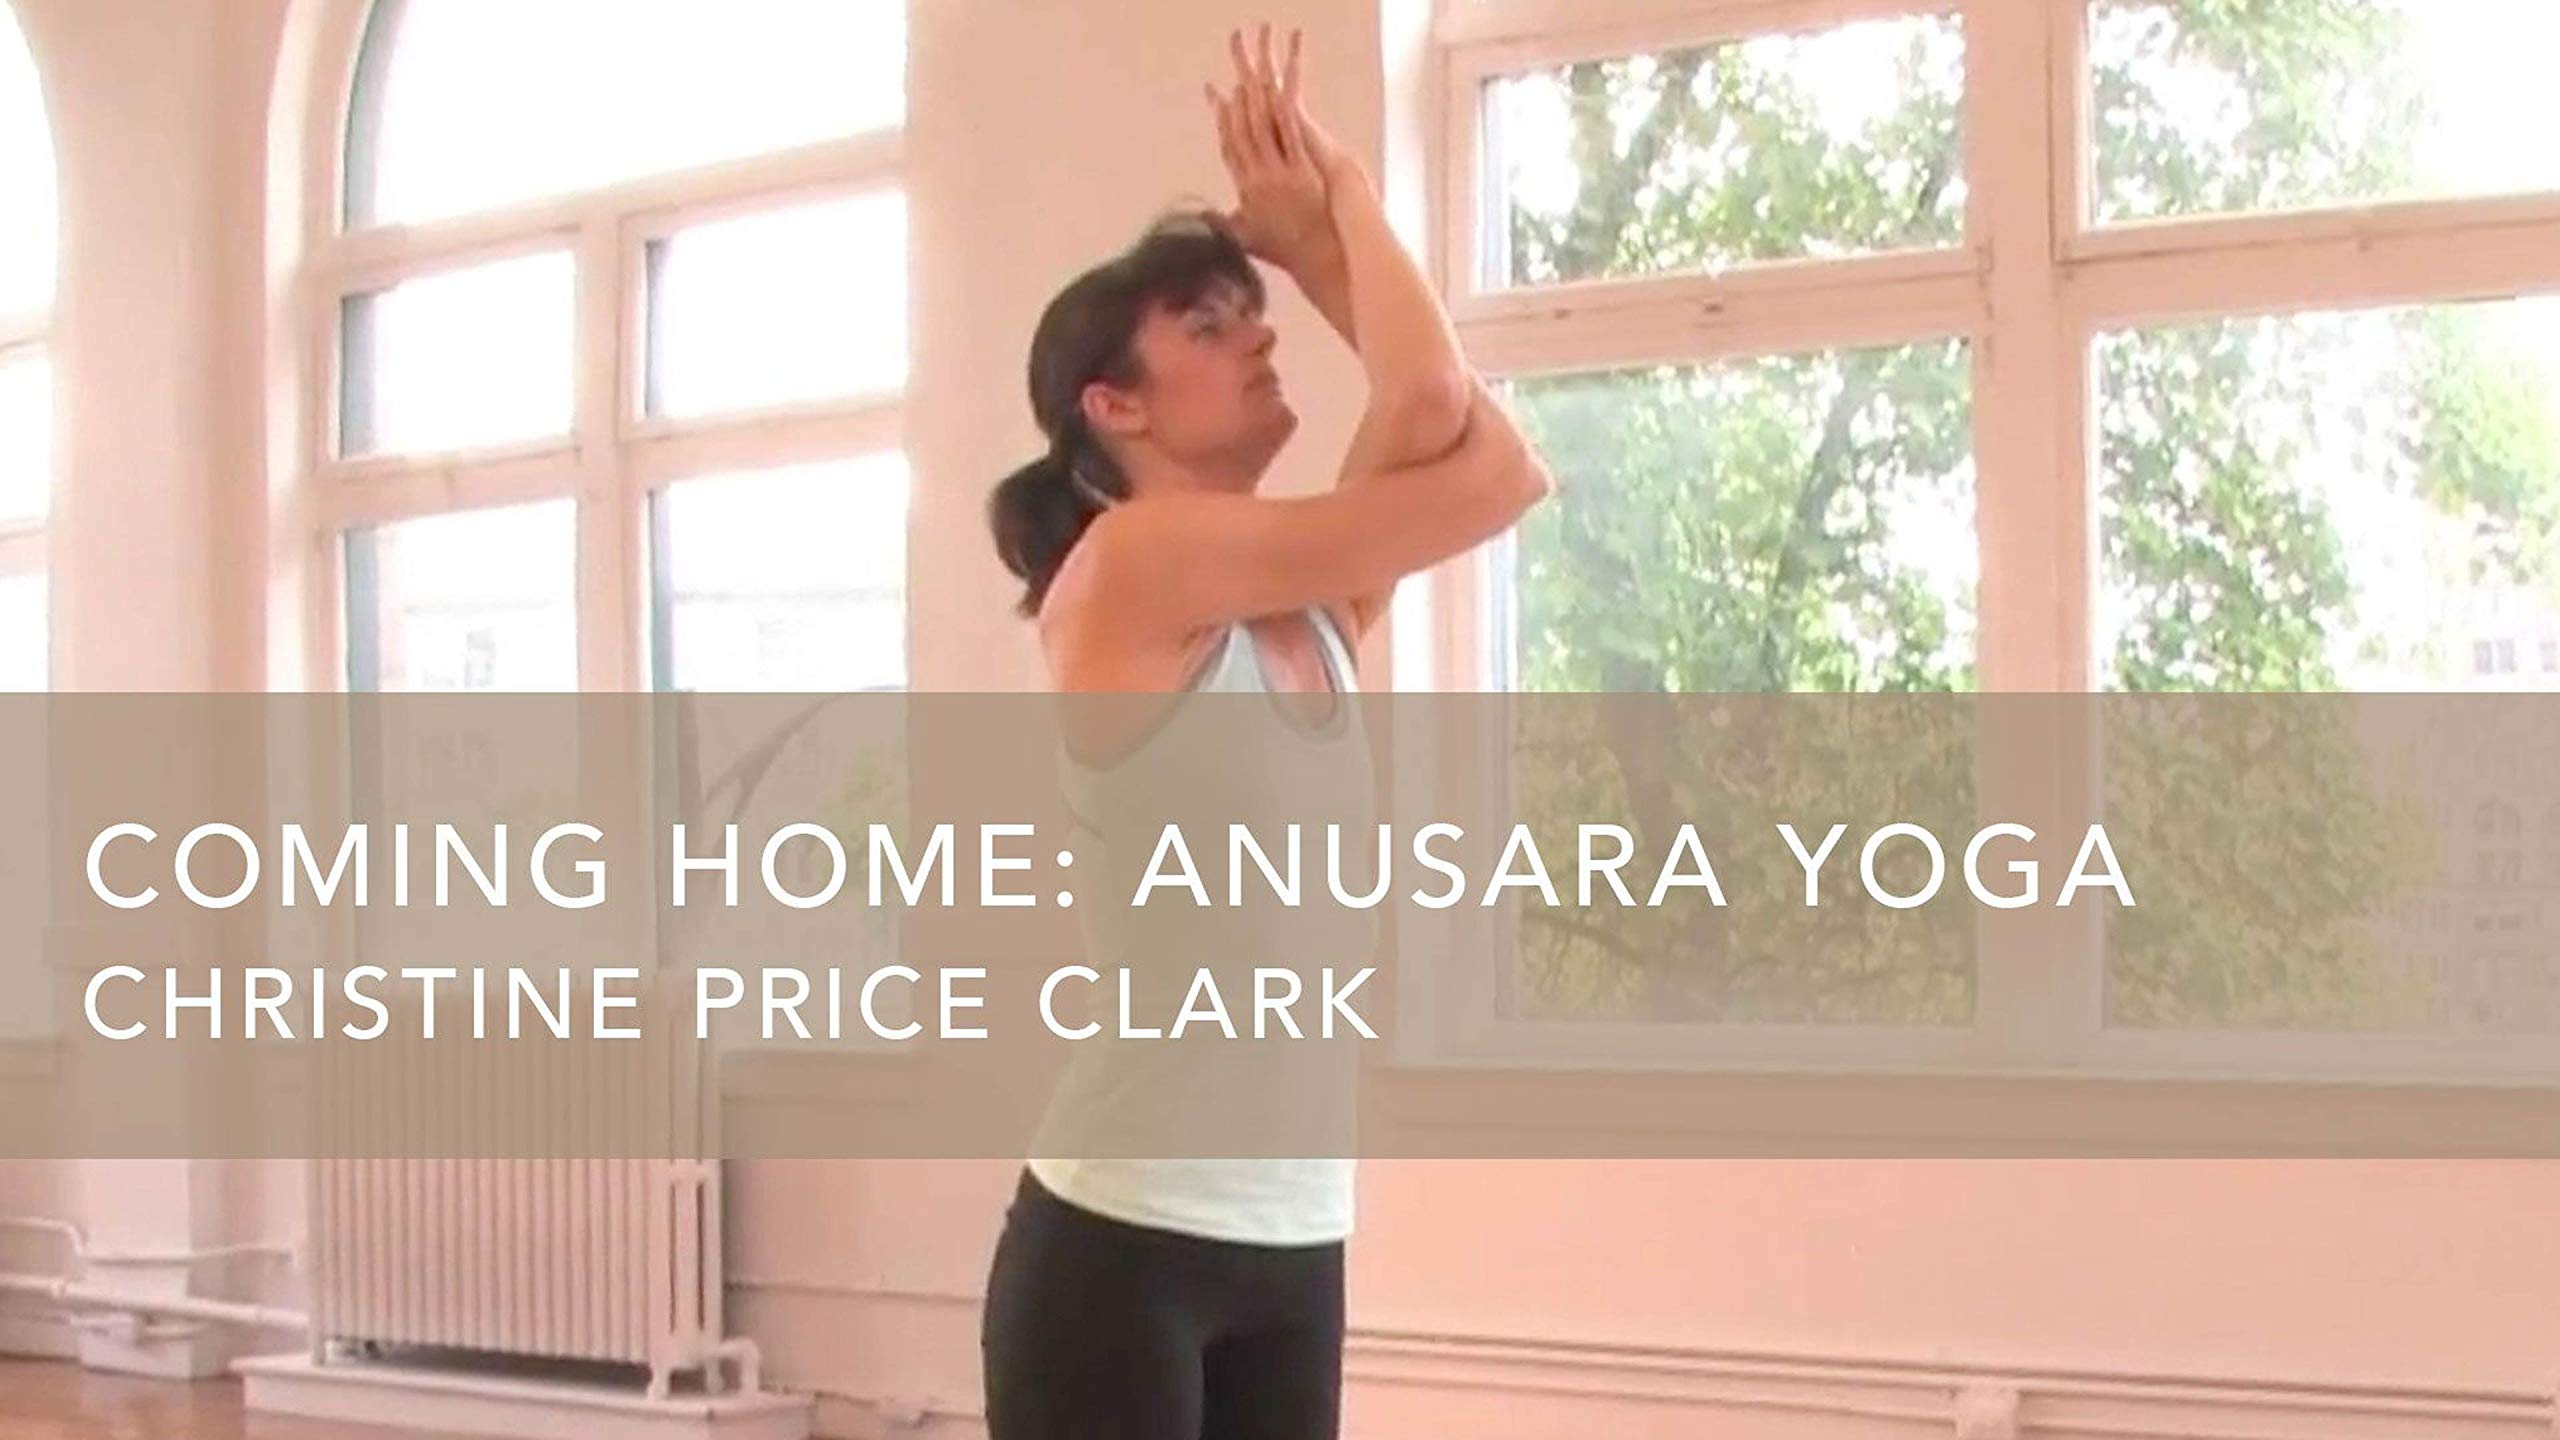 Amazon.com: Coming Home: Anusara Yoga: Christine Price Clark ...